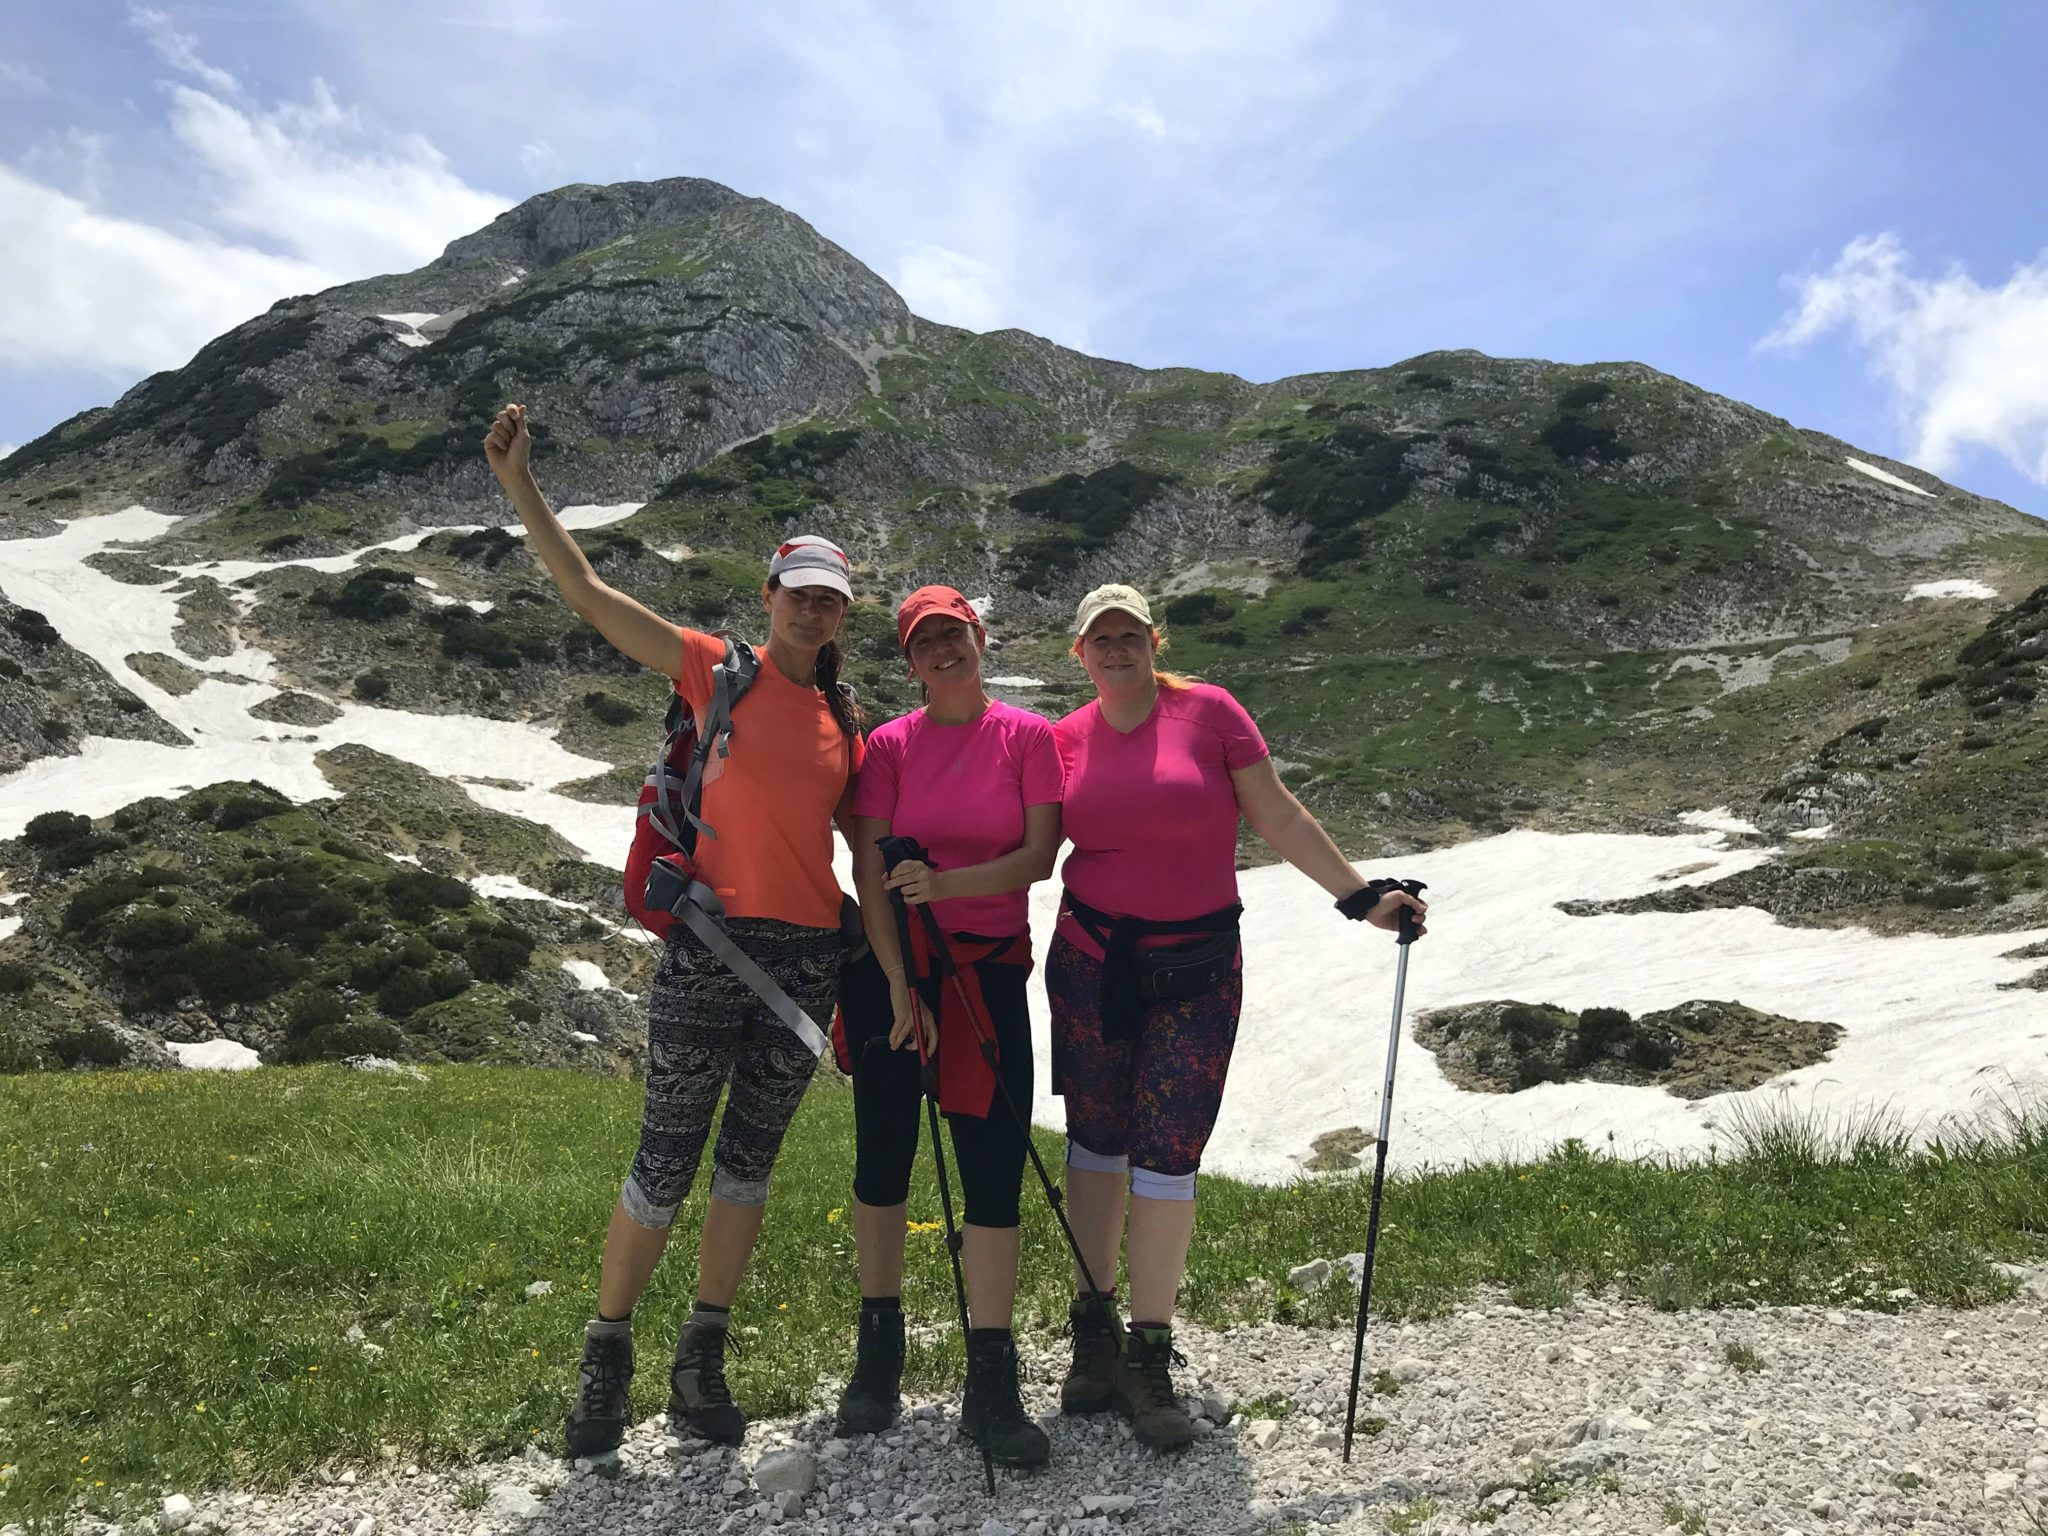 Three women enjoying a hike in the Triglav National Park